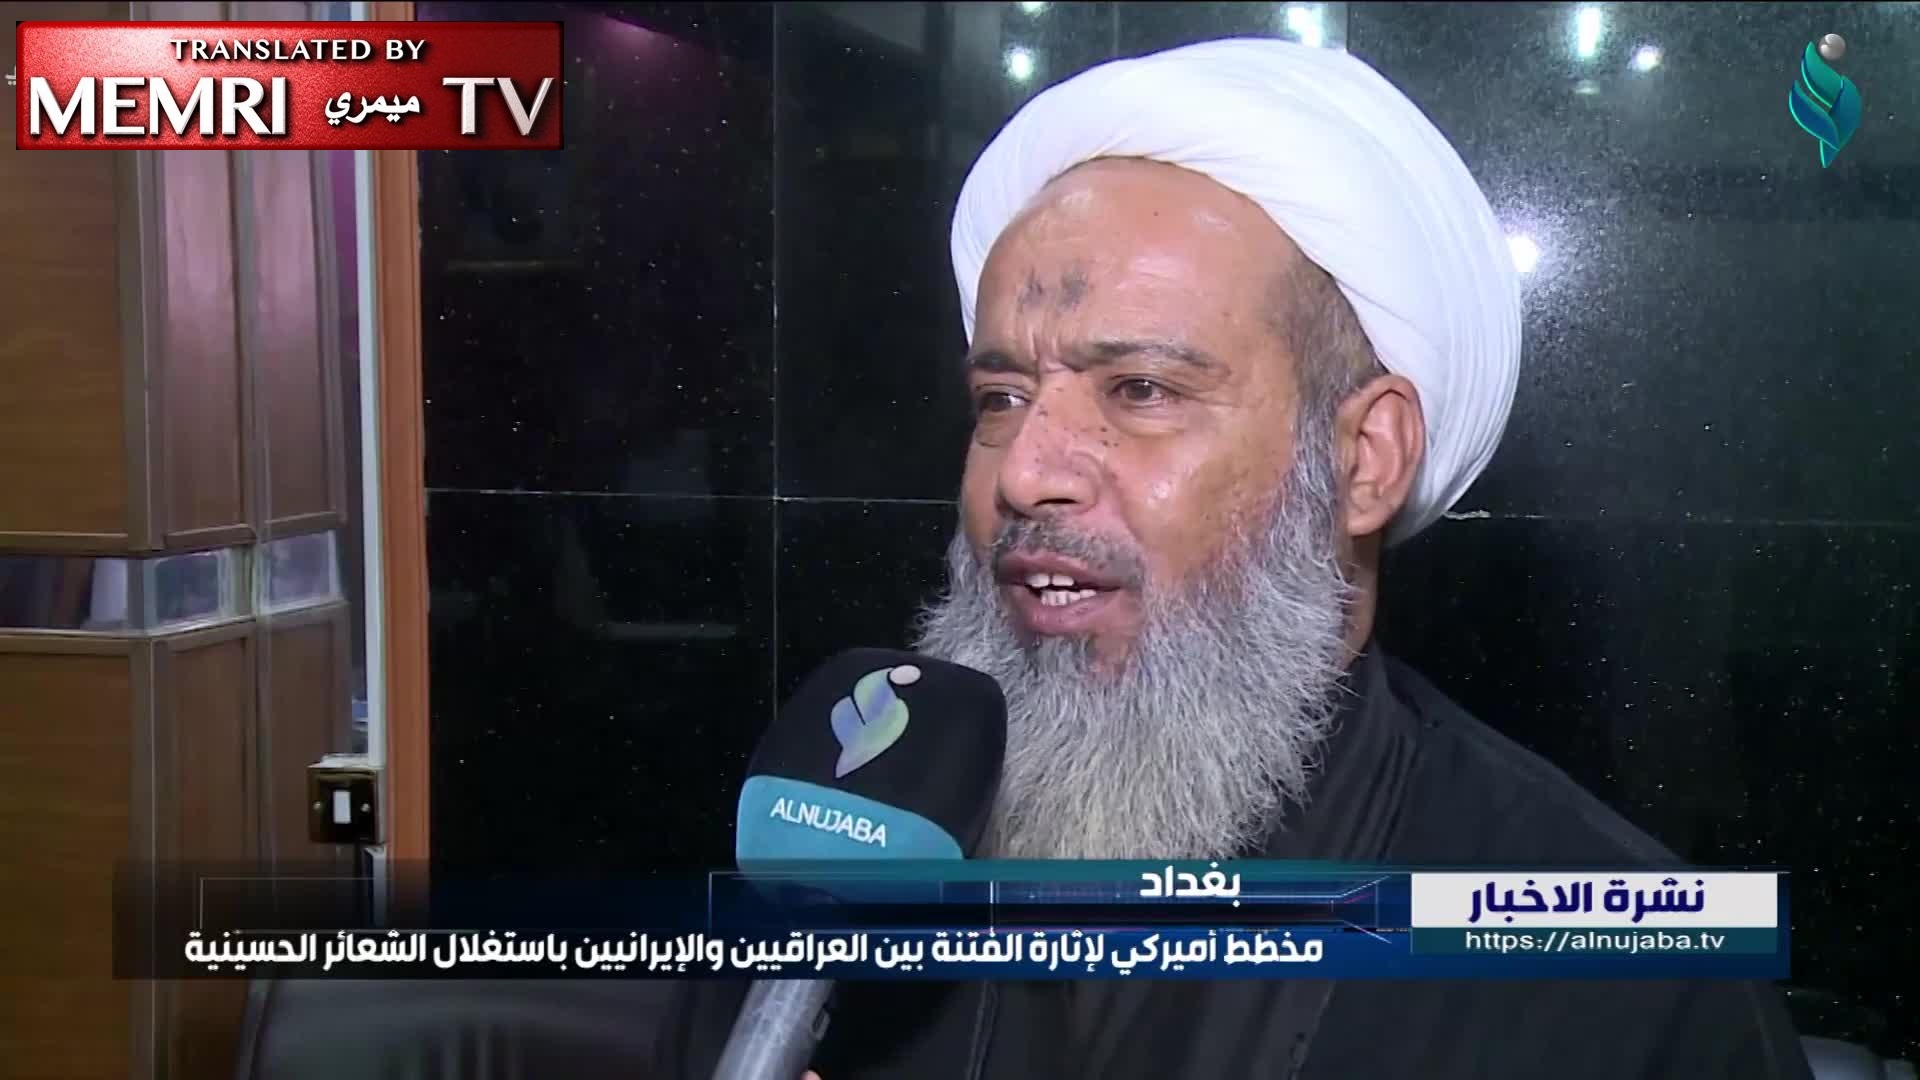 Iraqi TV Report: U.S. Embassy In Baghdad Paying For, Supervising Plot To Sow Division Between Iranian, Iraqi Pilgrims In Upcoming Pilgrimage